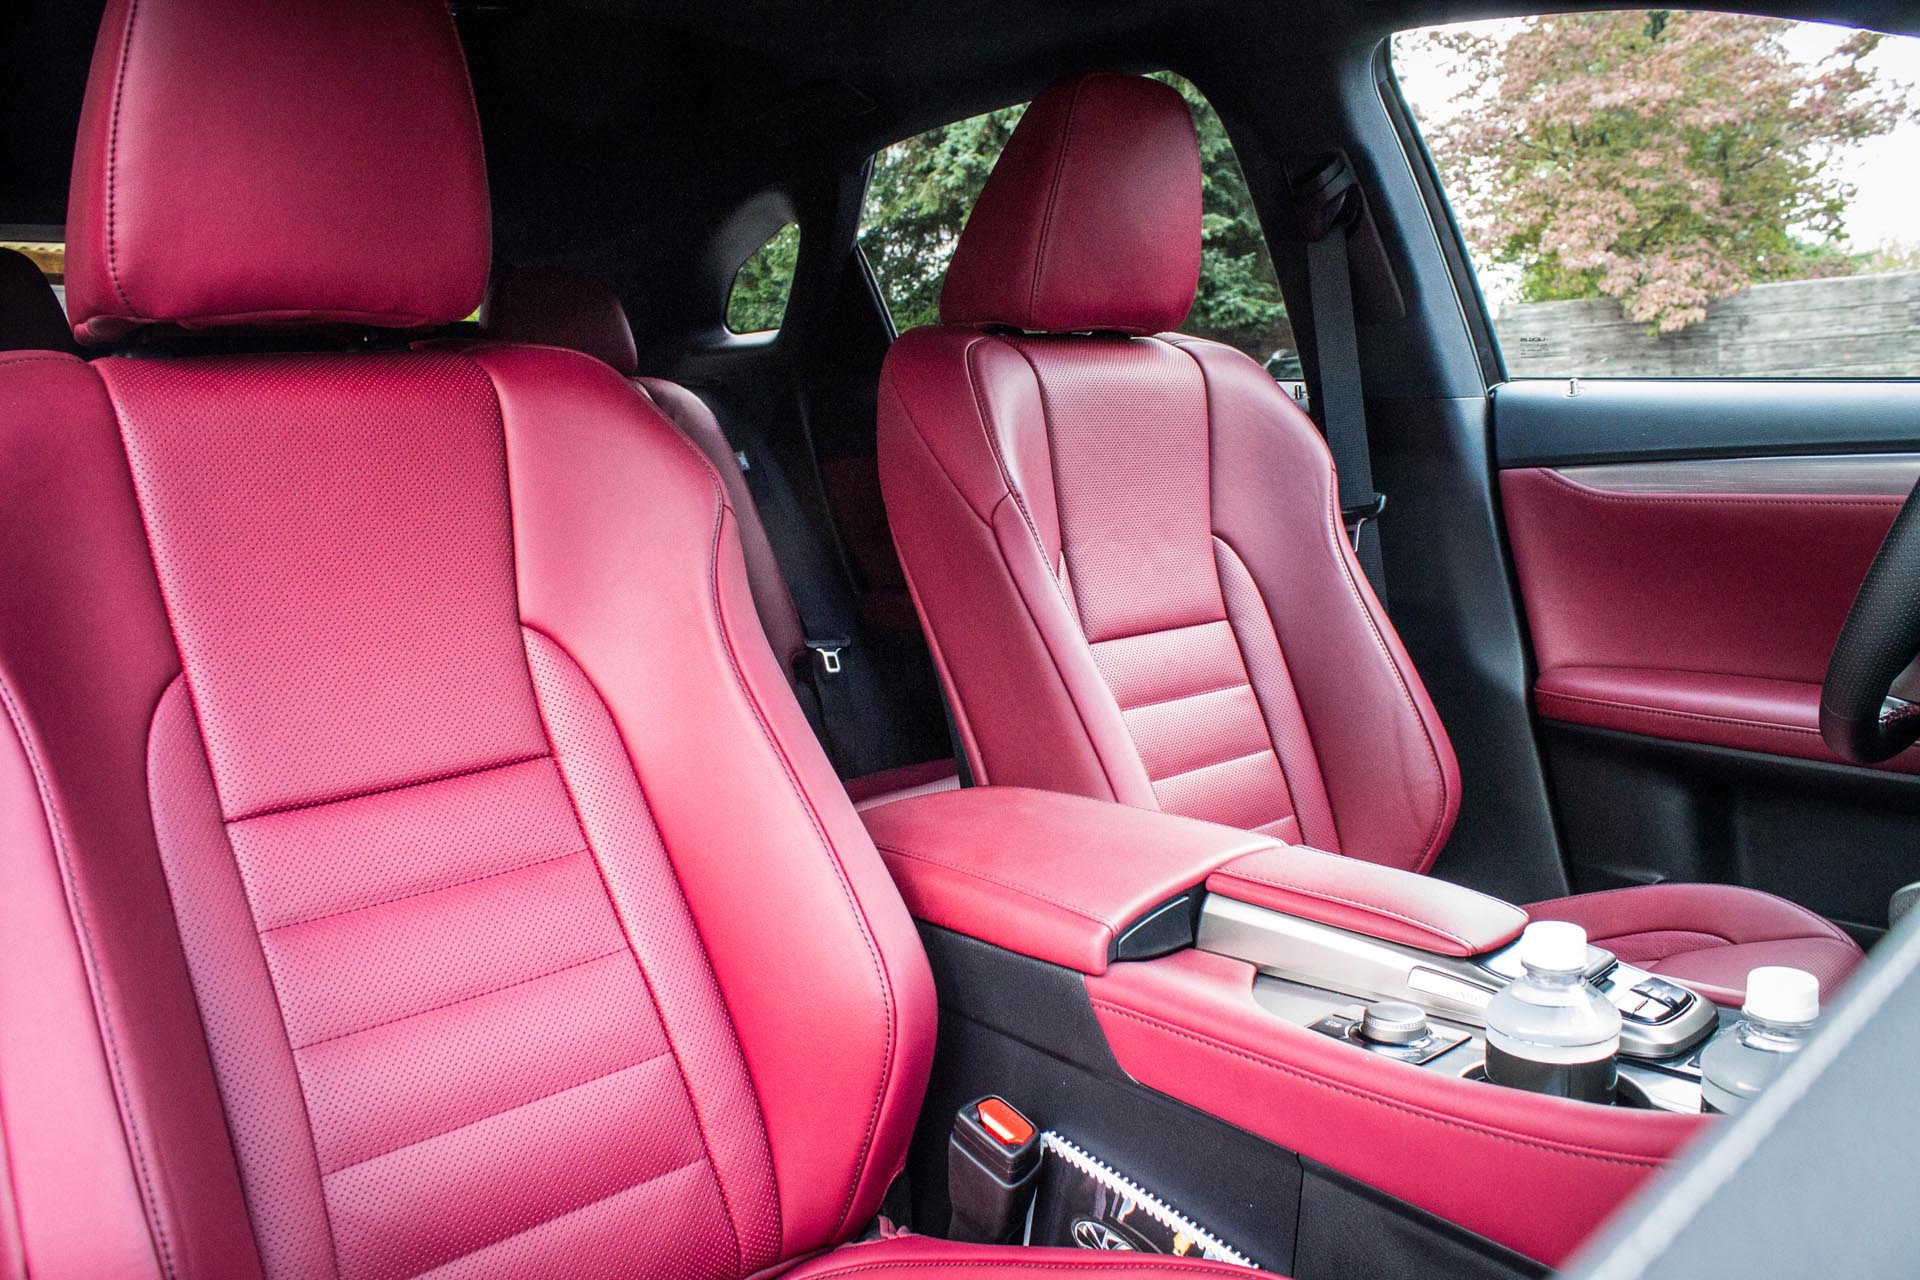 Inside, the new RX is still extremely comfortable, but it's got a great deal more style than any of its ancestors. The F-Sport seats in particular are excellent, deeply bolstered and still very comfortable. In red, they're both stylish and functional.